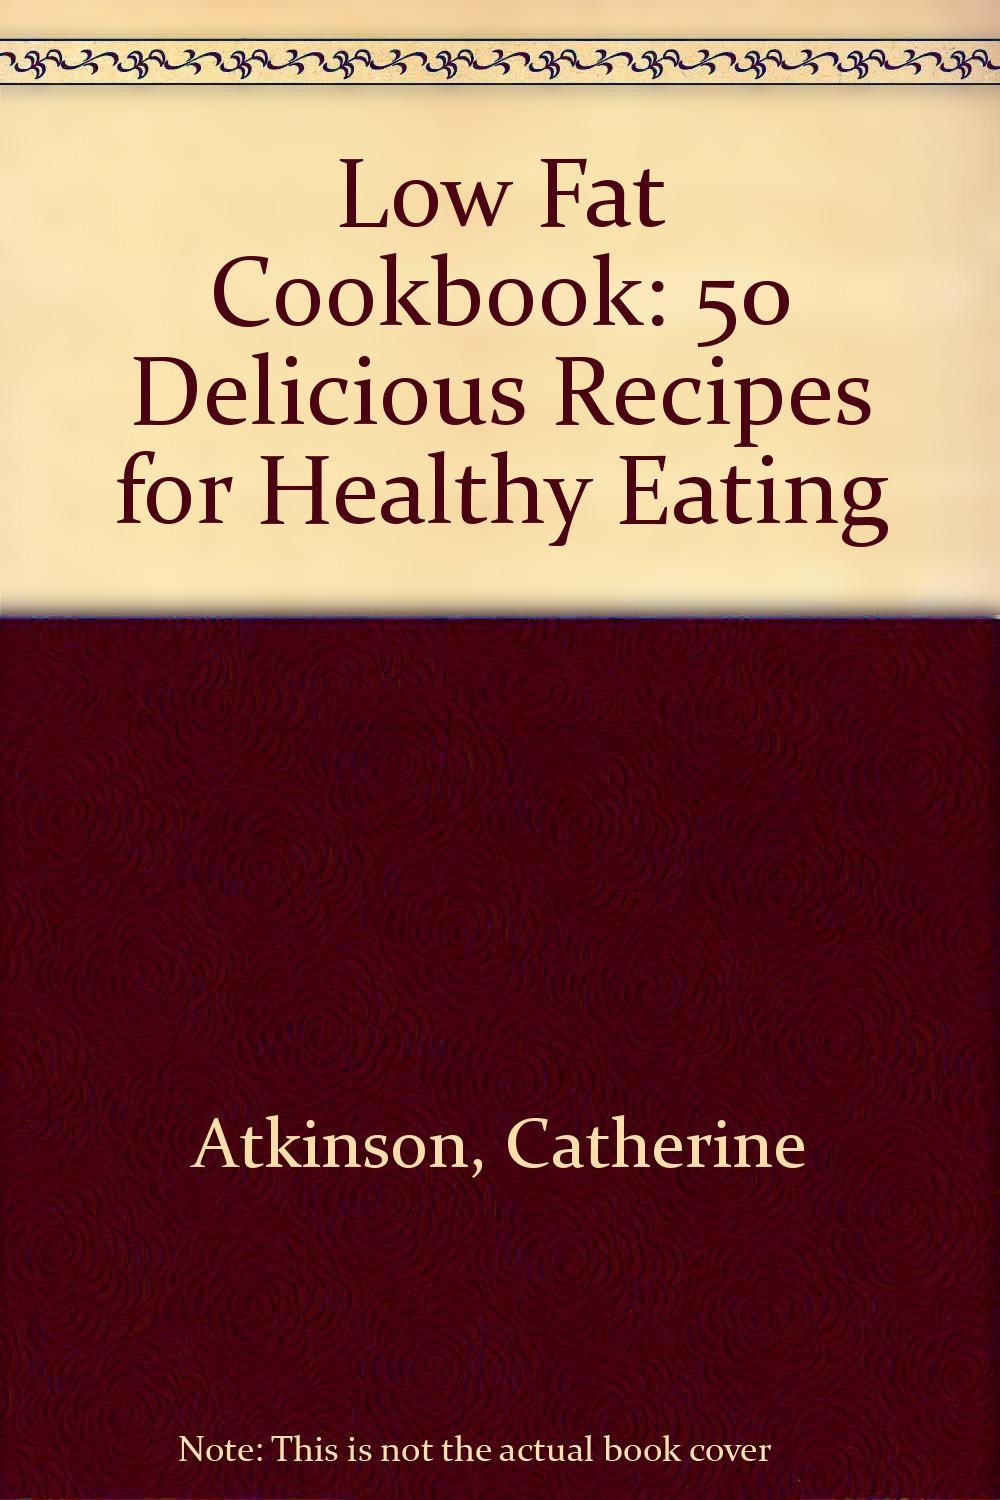 Download Low Fat Cookbook: 50 Delicious Recipes for Healthy Eating PDF